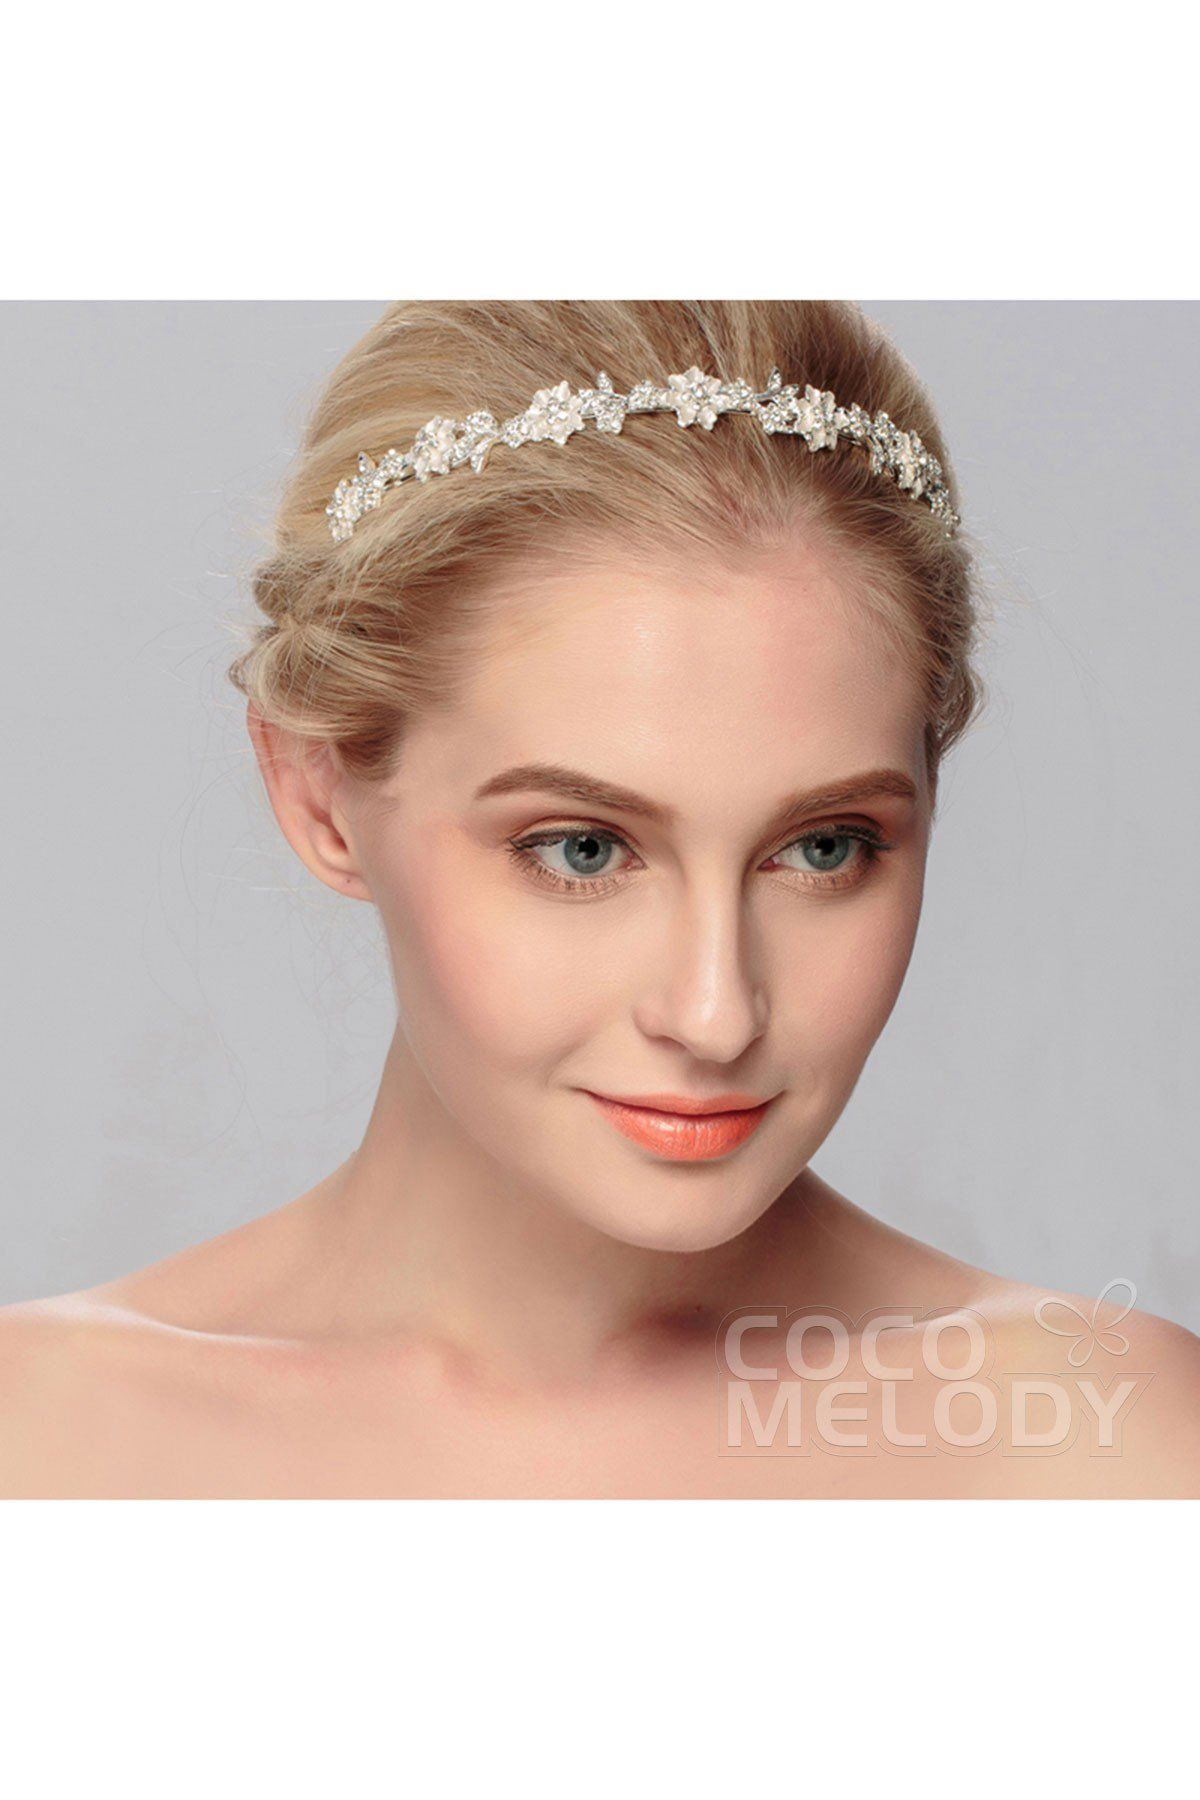 ... Bridal Head Piece Women Party Hair Accessories By. Trendy Silver Cloud Alloy  Wedding Tiara with Crystal TS-J457 2569071303e2